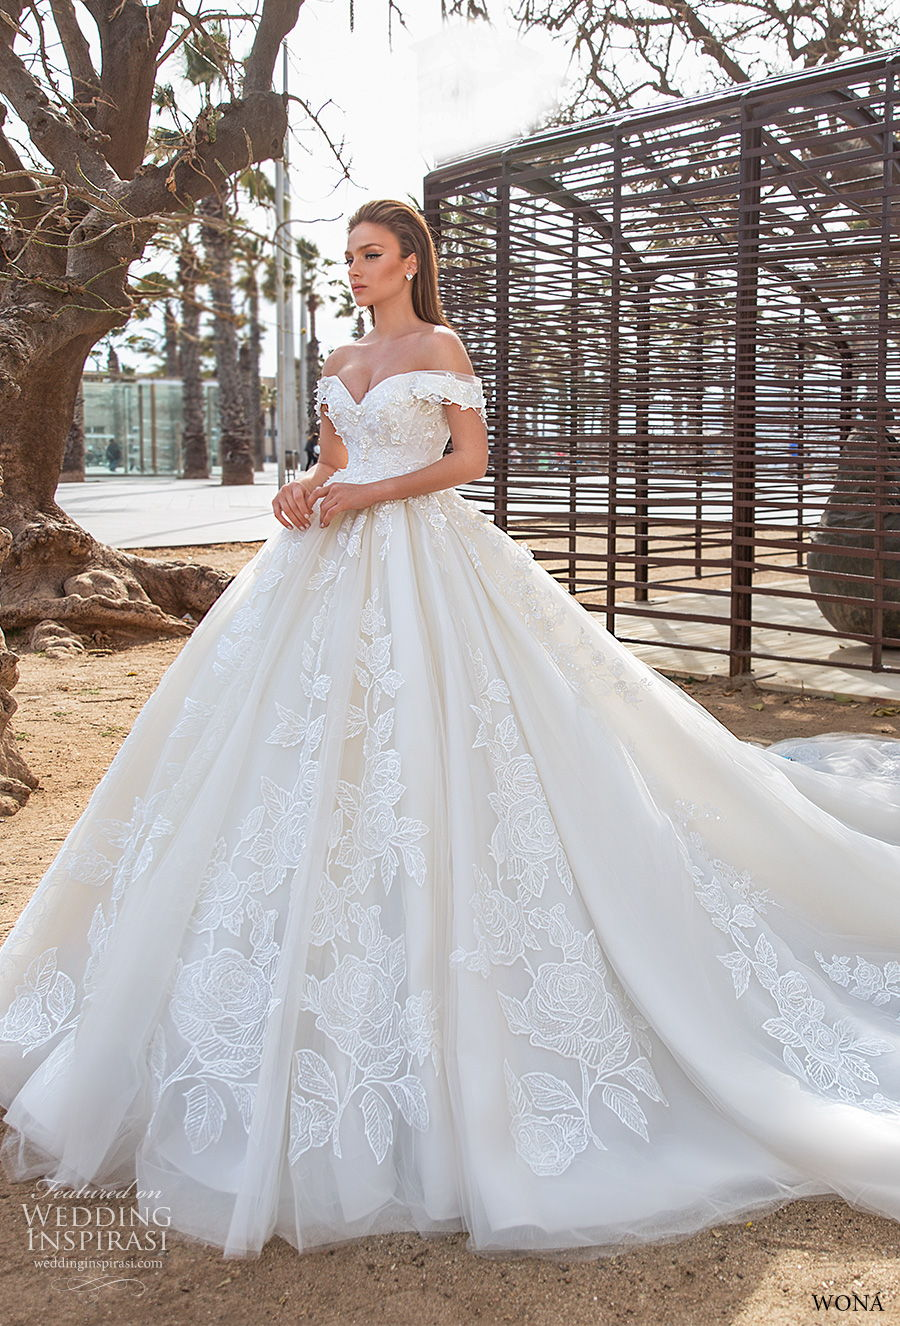 wona 2020 diva bridal off the shoulder sweetheart neckline full embellishment princess ball gown a  line wedding dress mid back royal train (5) mv